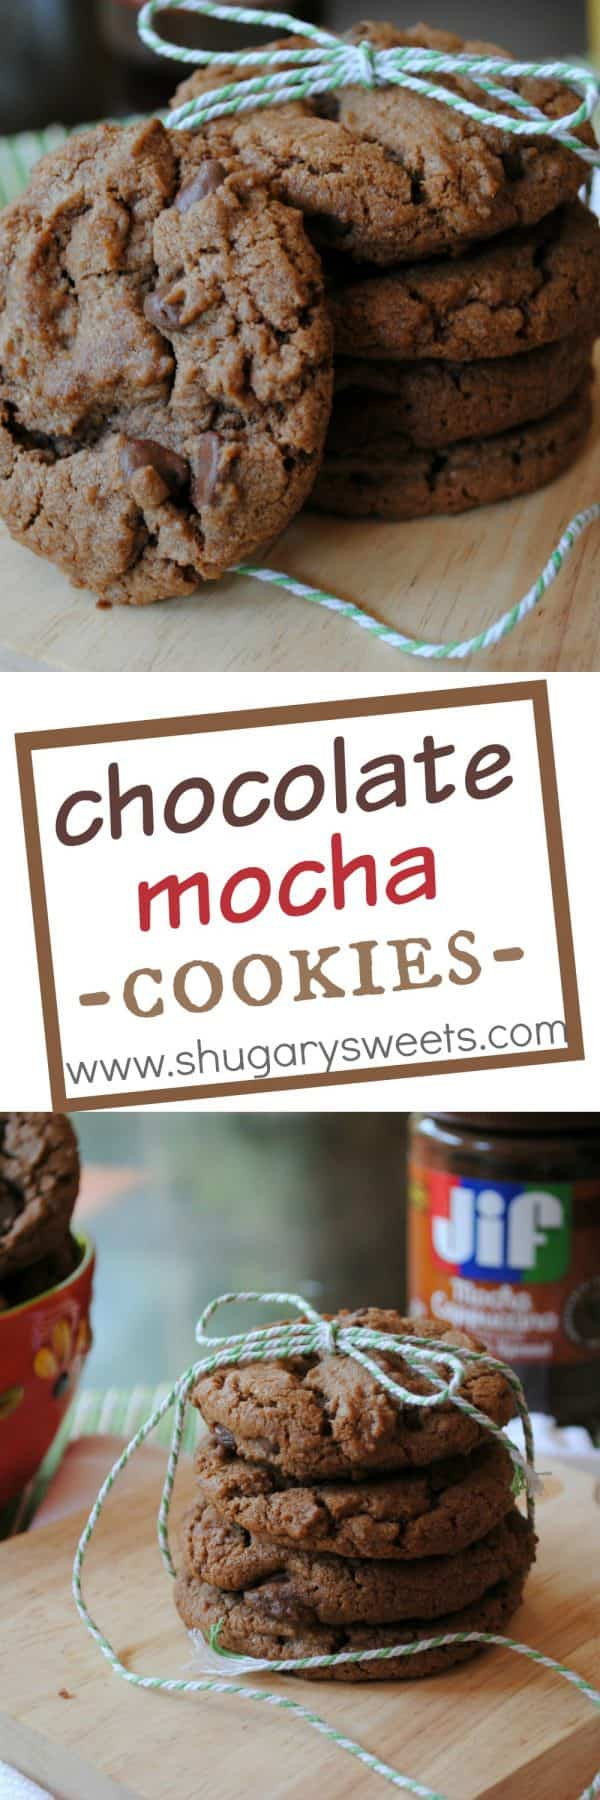 Chocolate Mocha Nutella Cookies: so rich and delicious you will want more!